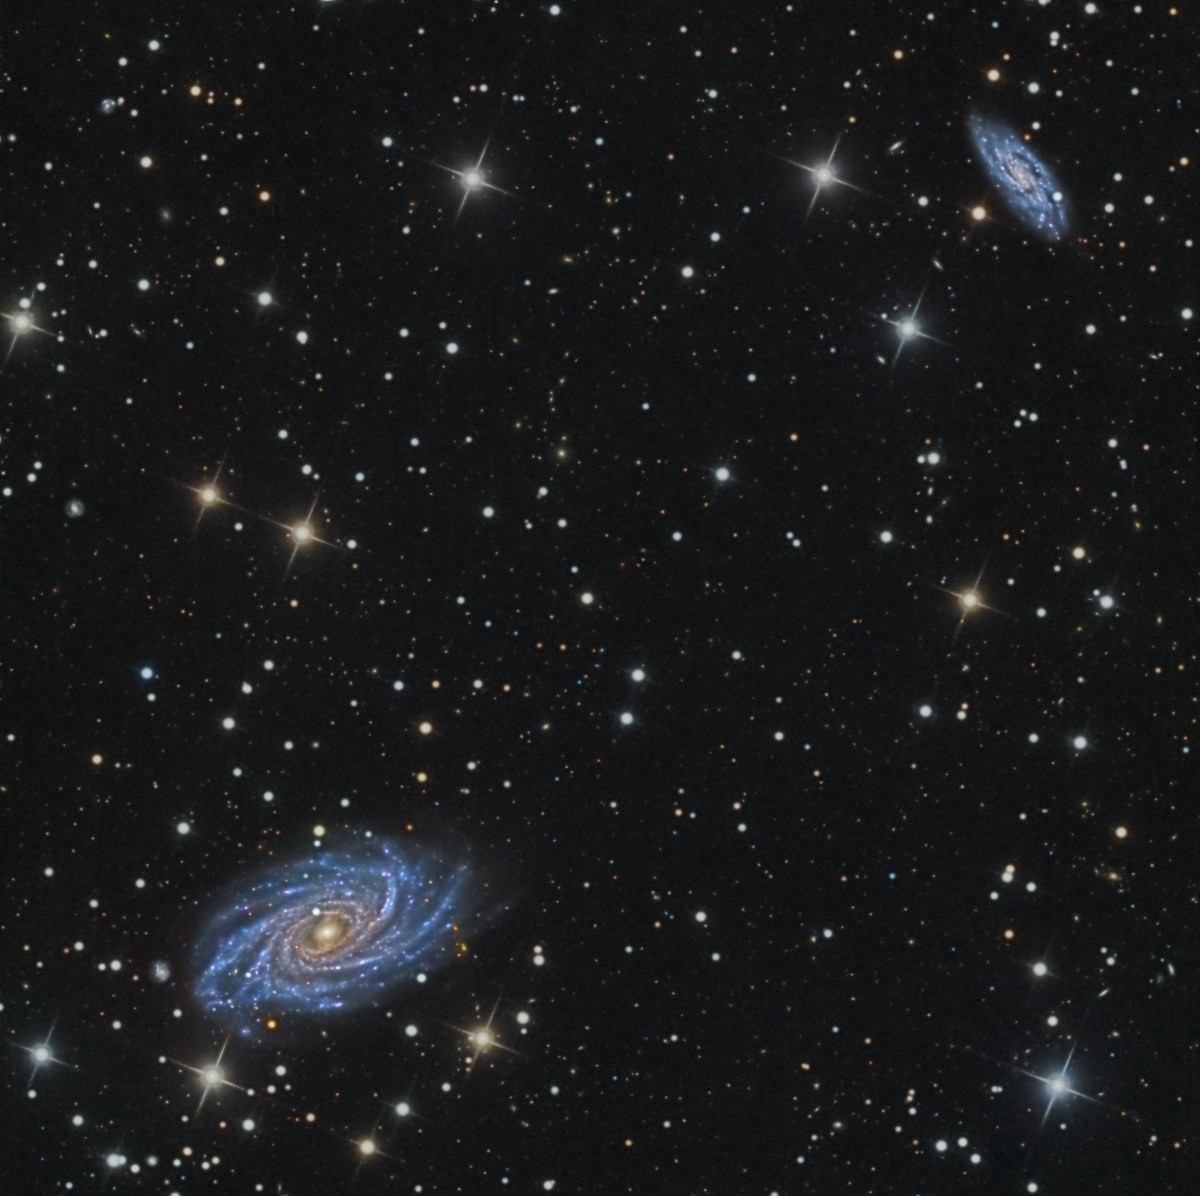 NGC 2336 and IC 467, galaxies in Camelopardalis